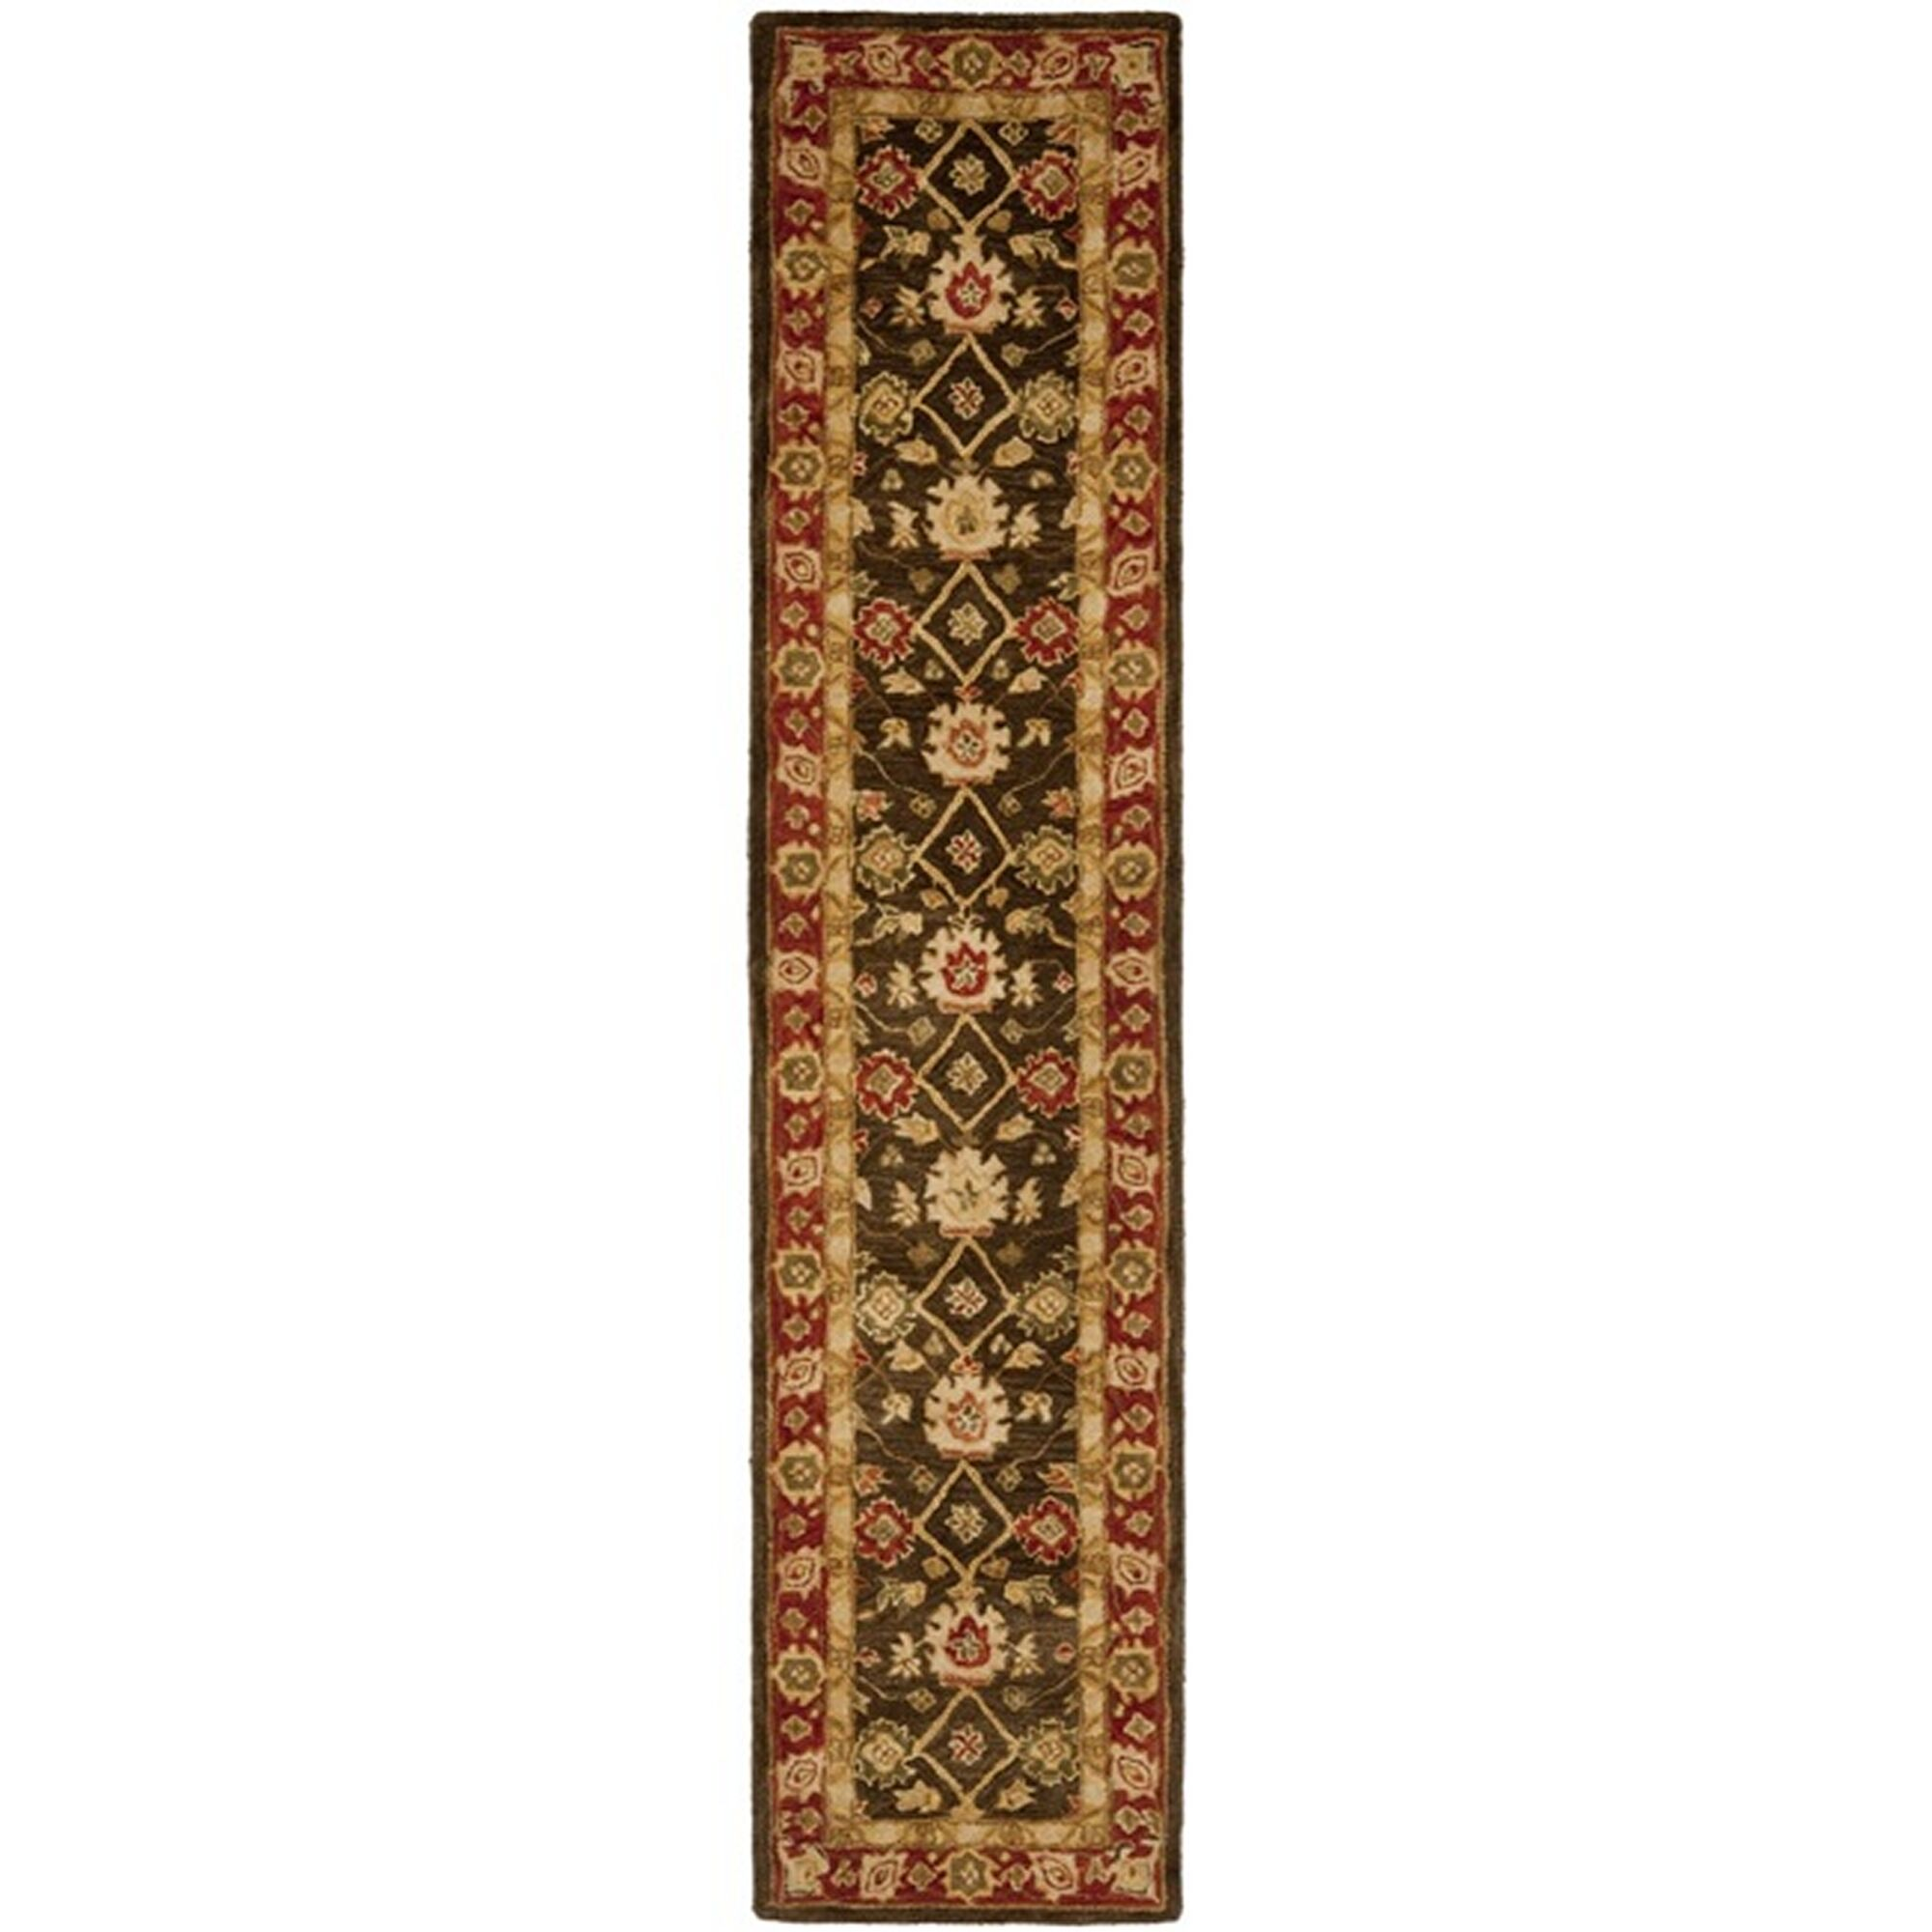 Thao Hand-Woven Wool Olive/Rust Area Rug Rug Size: Runner 2'3